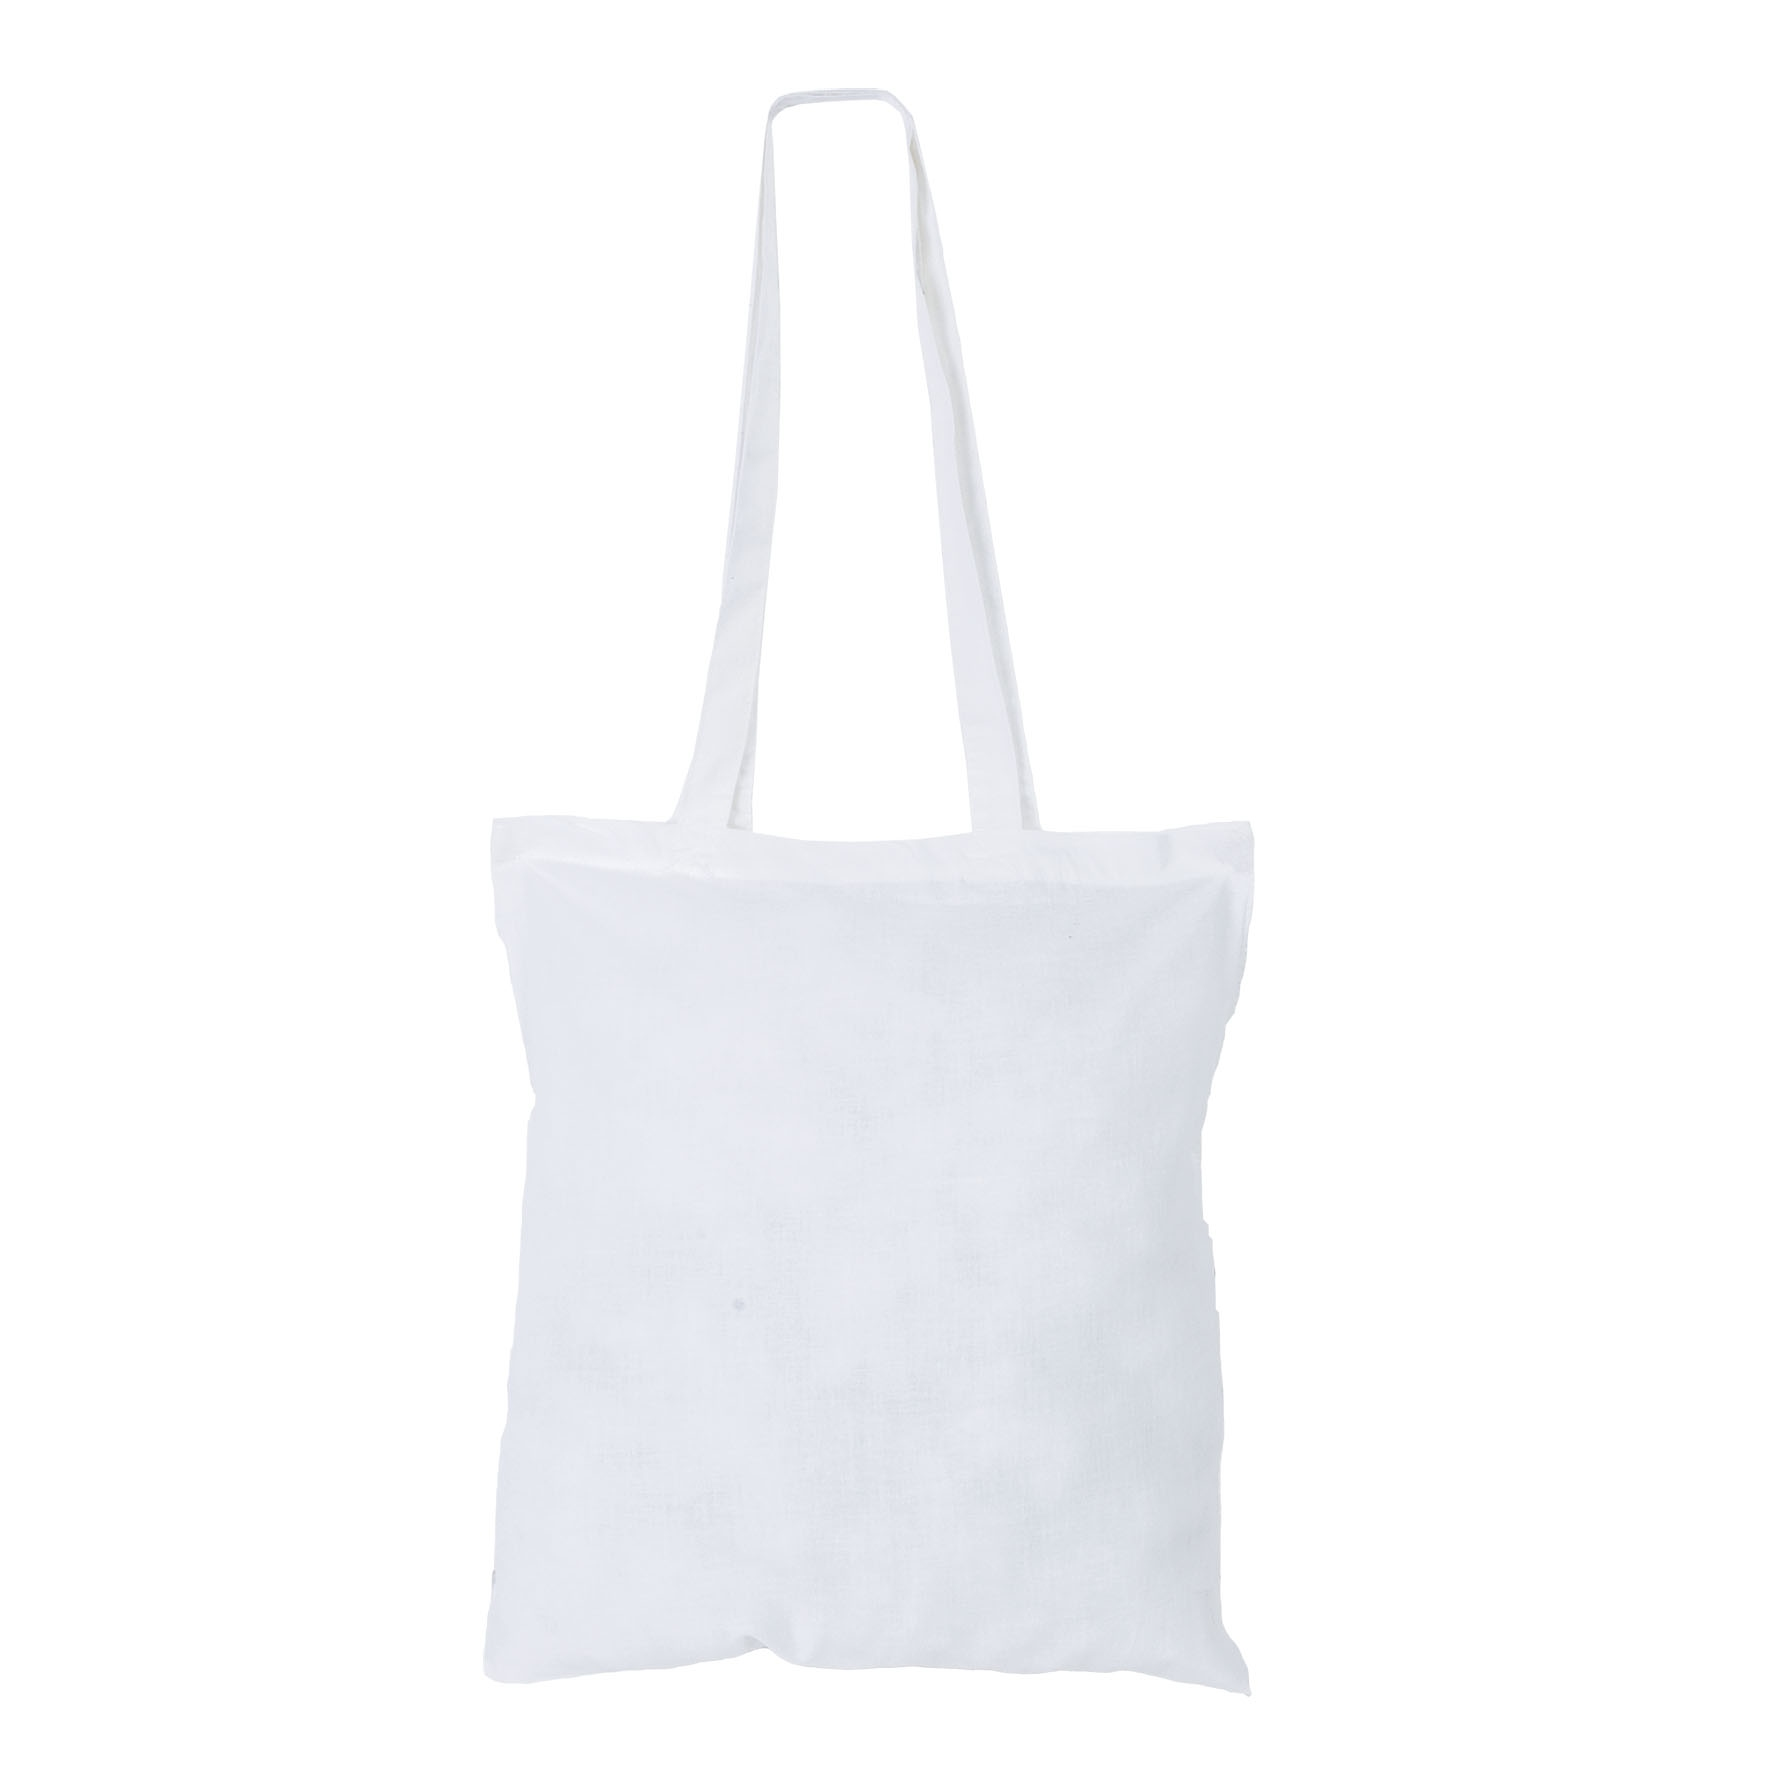 Sac shopping publicitaire coton Maria - sac shopping personnalisable